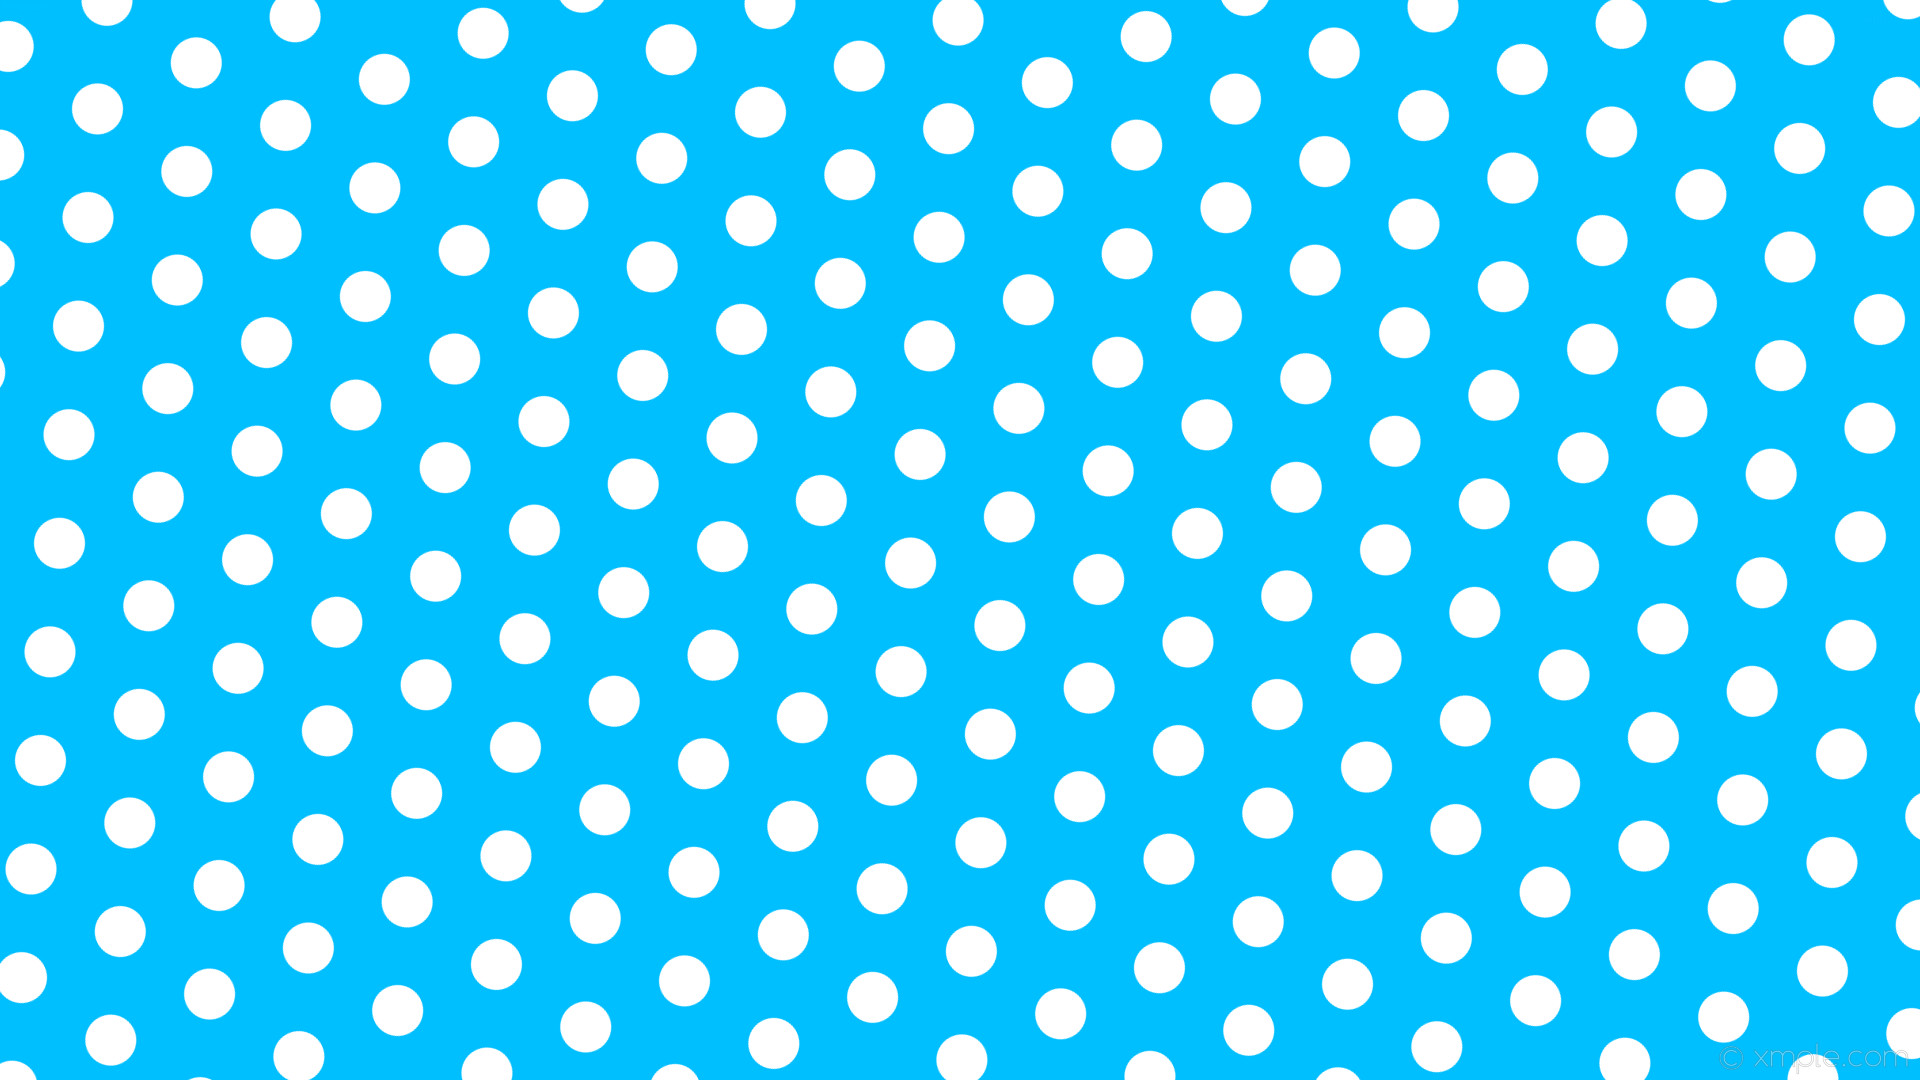 wallpaper dots blue hexagon white polka deep sky blue #00bfff #ffffff  diagonal 25°